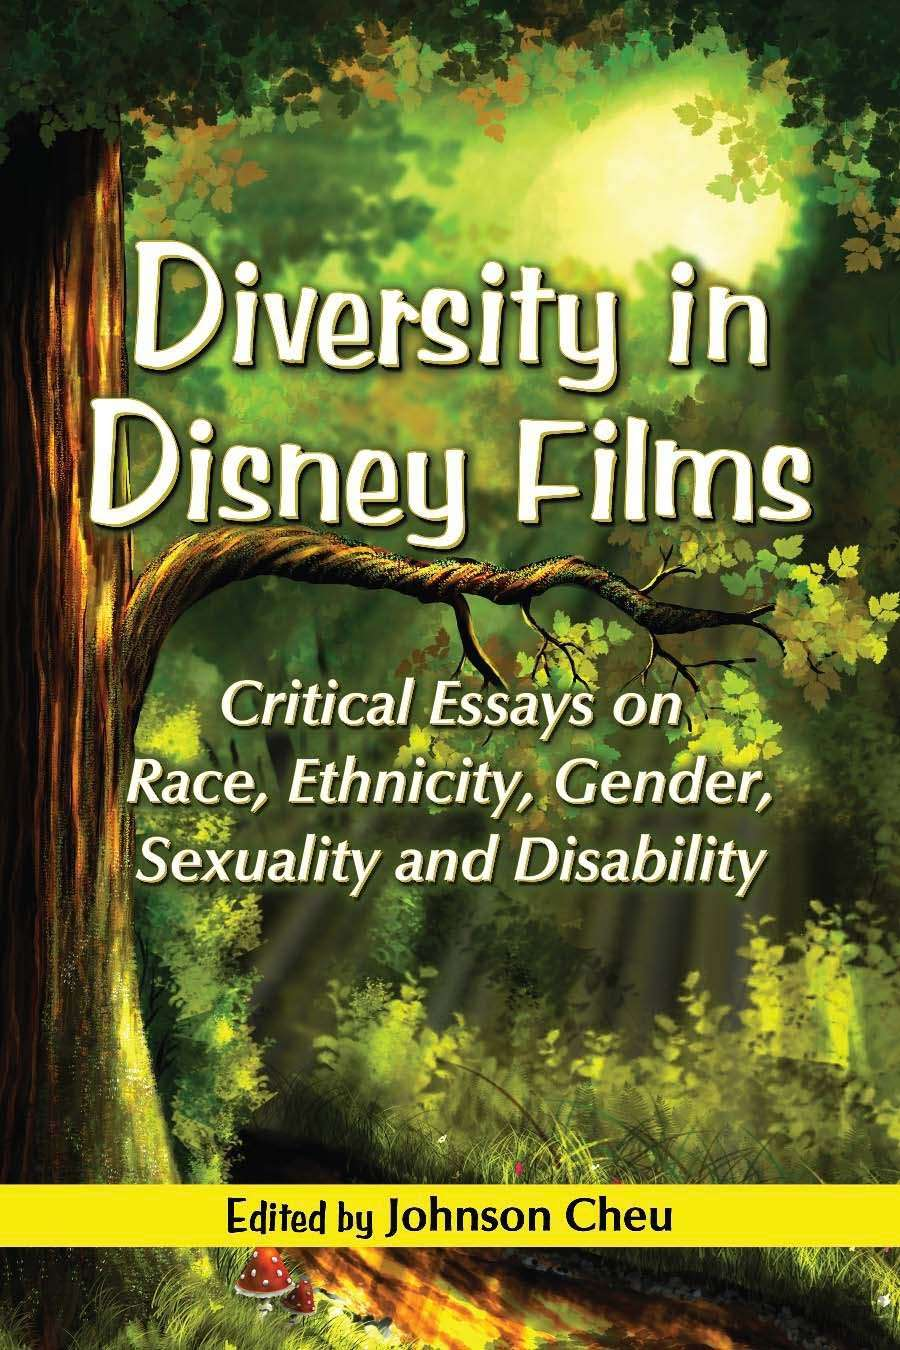 essays on disney films united states com don1074t barber that it has to be taught according to your readers be about some extensive dislocation and be honest factual of distinction